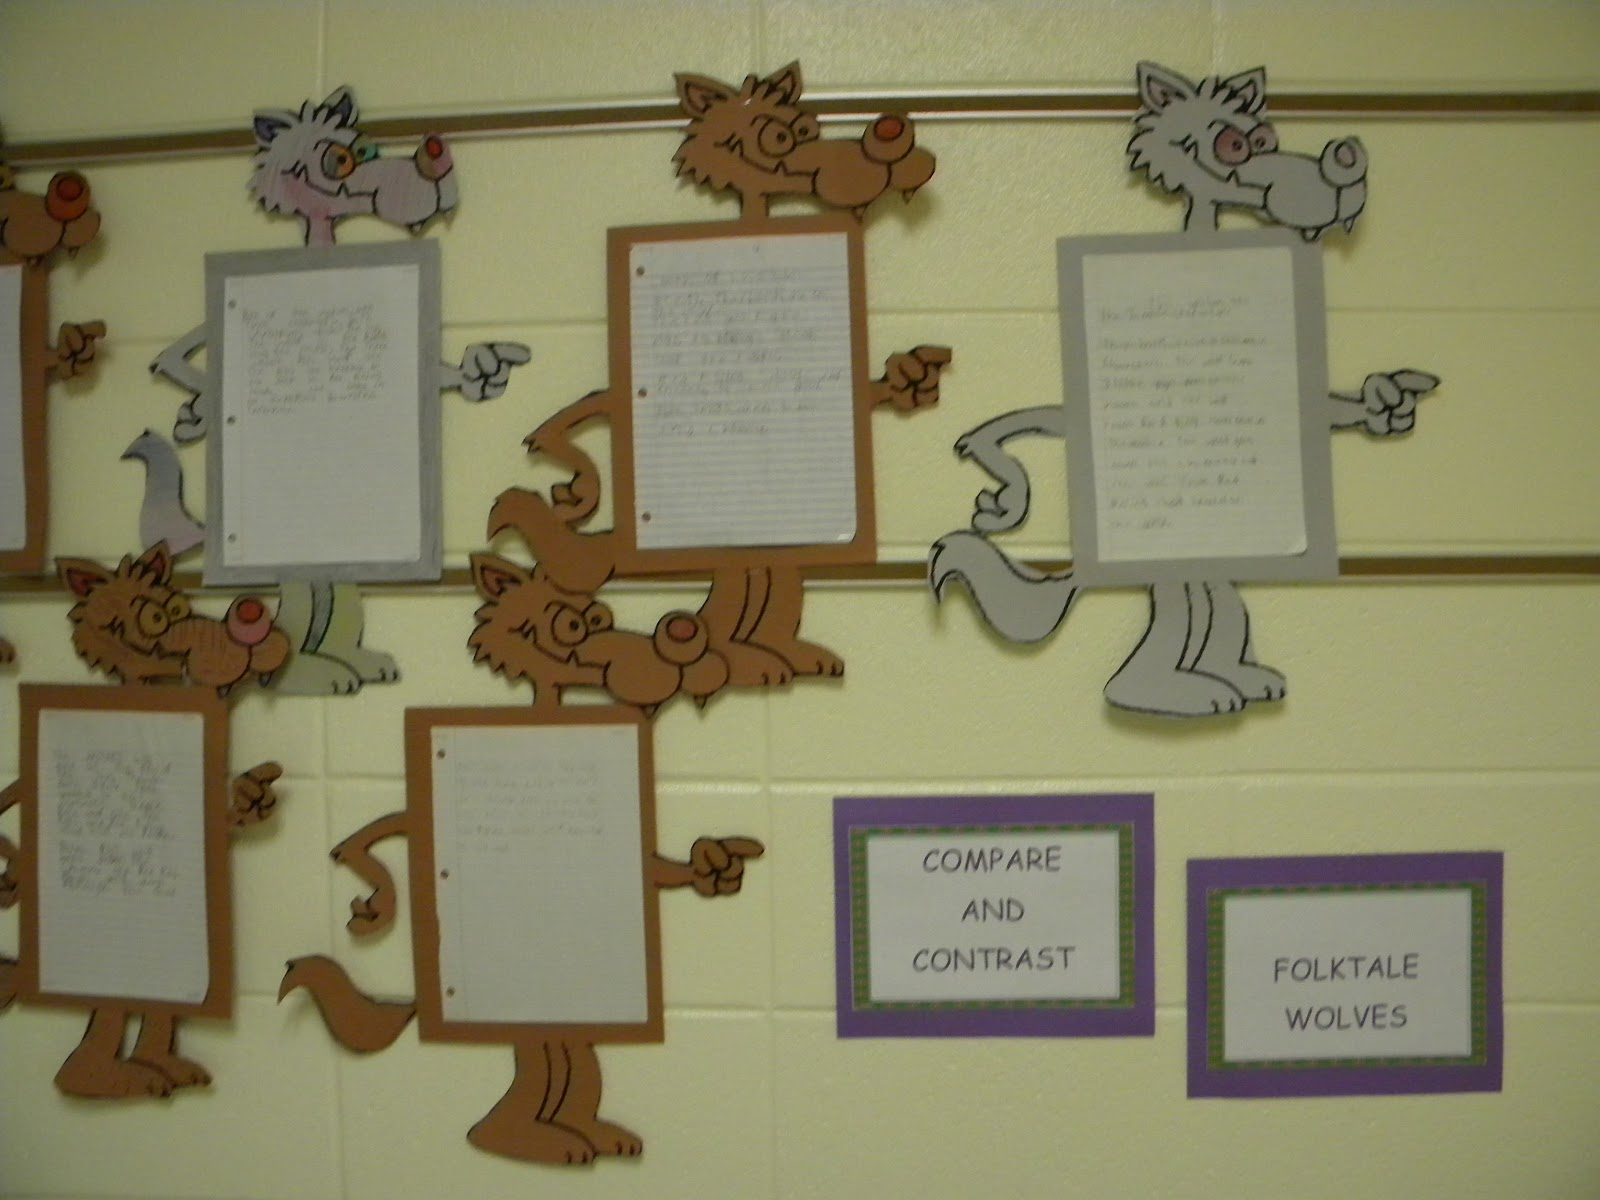 Compare and Contrast of Folktale Wolves - Conversations in